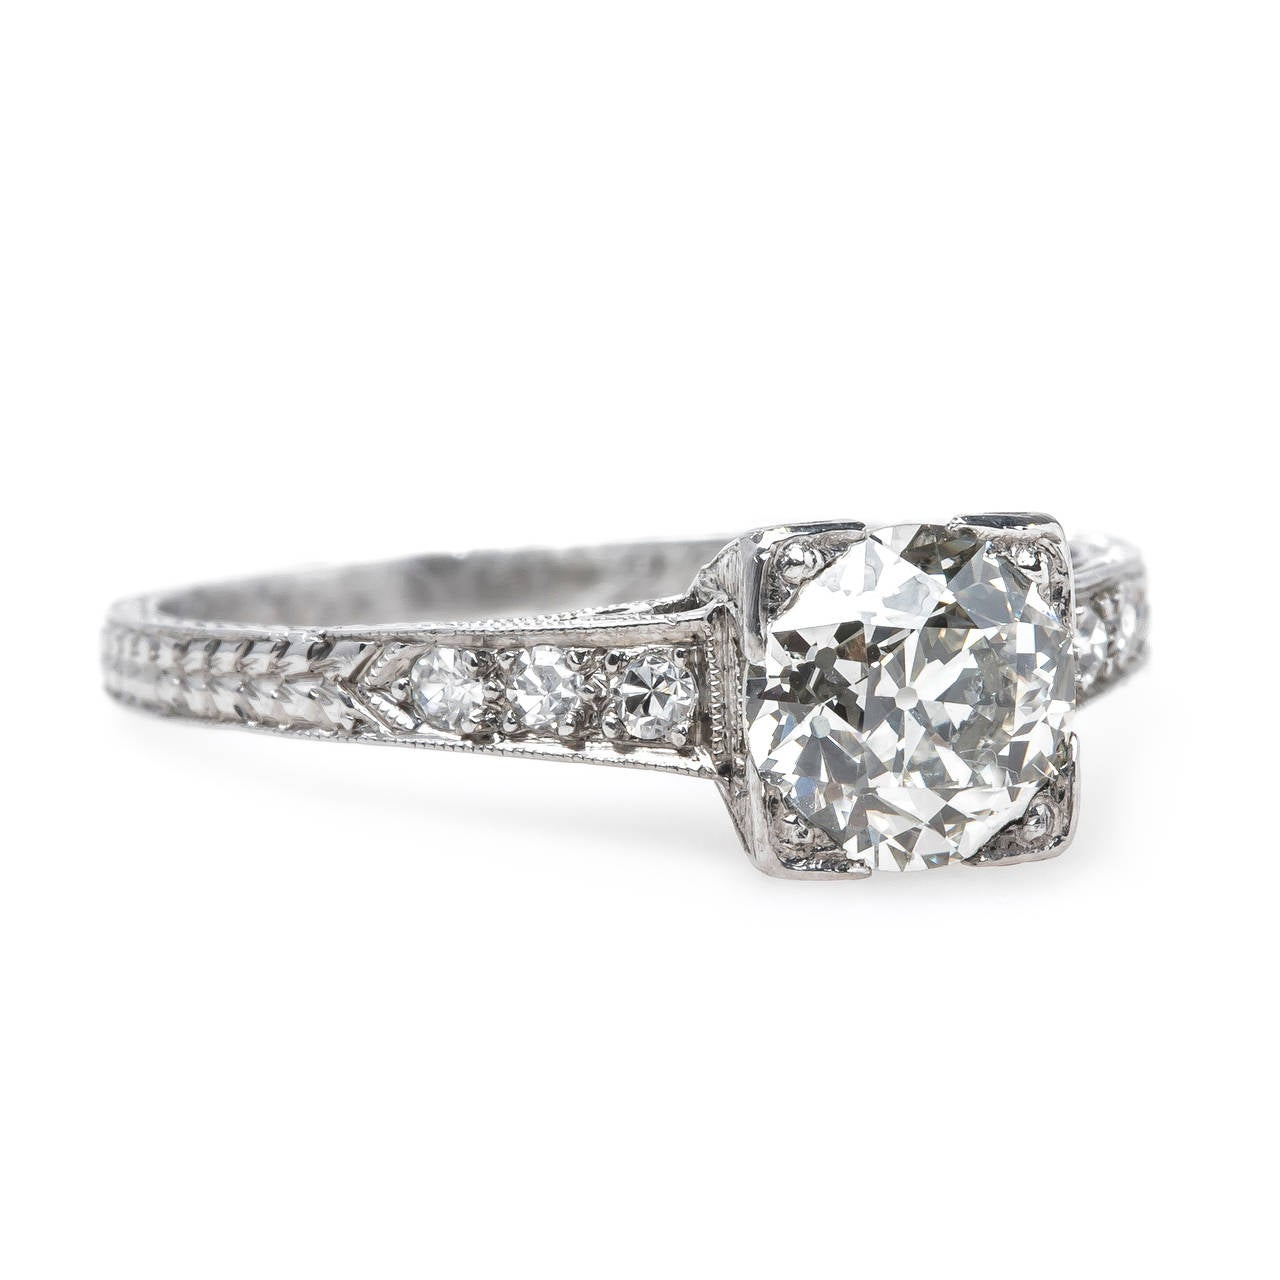 timeless engraved deco platinum engagement ring at 1stdibs